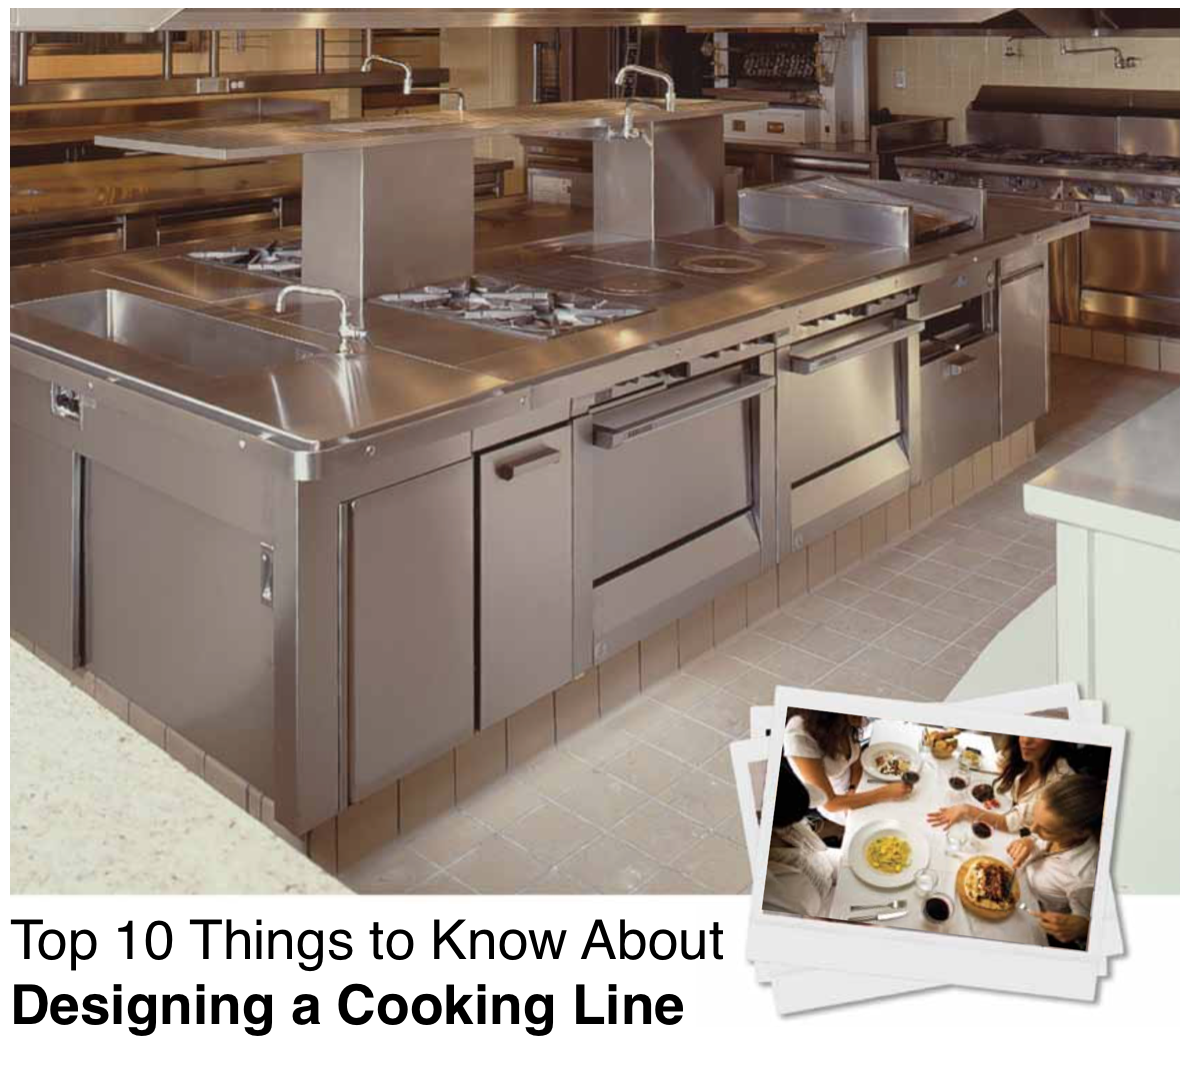 Top 10 Things to Know About Designing a Cooking Line.png